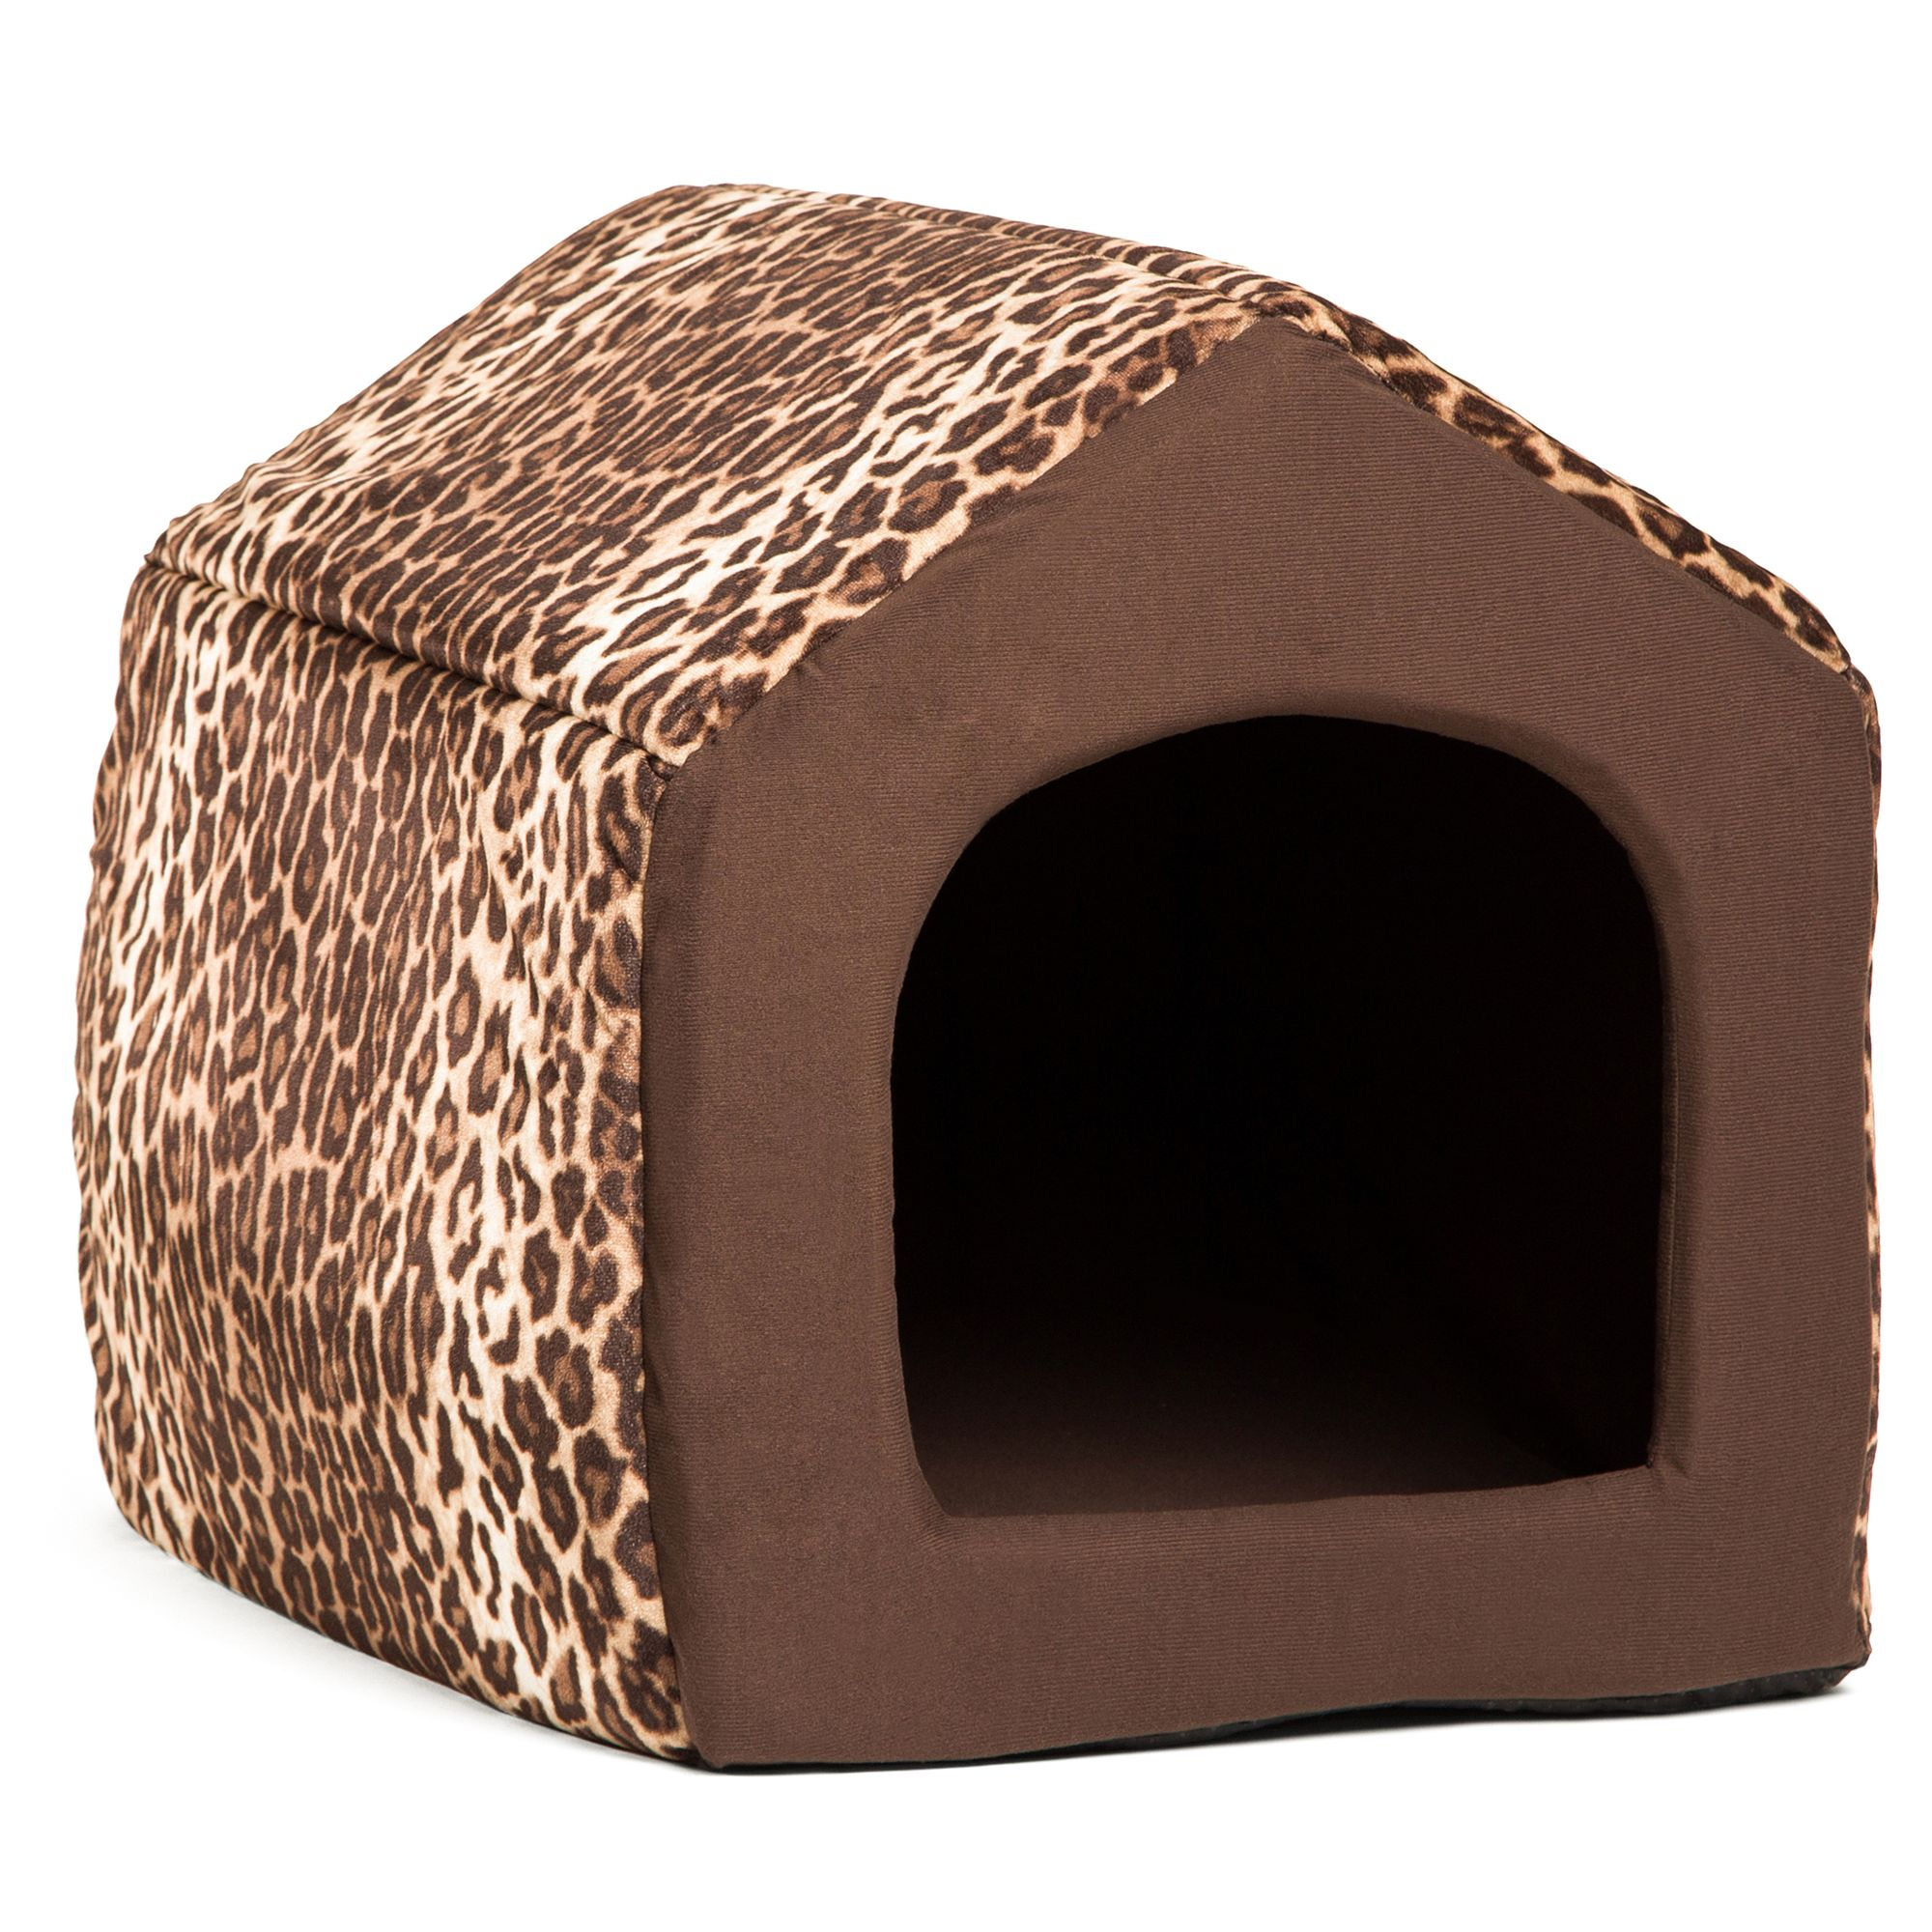 Best Friends By Sheri Convertible House Animal Print Pet Bed Size 18l X 16w X 16h Leopard